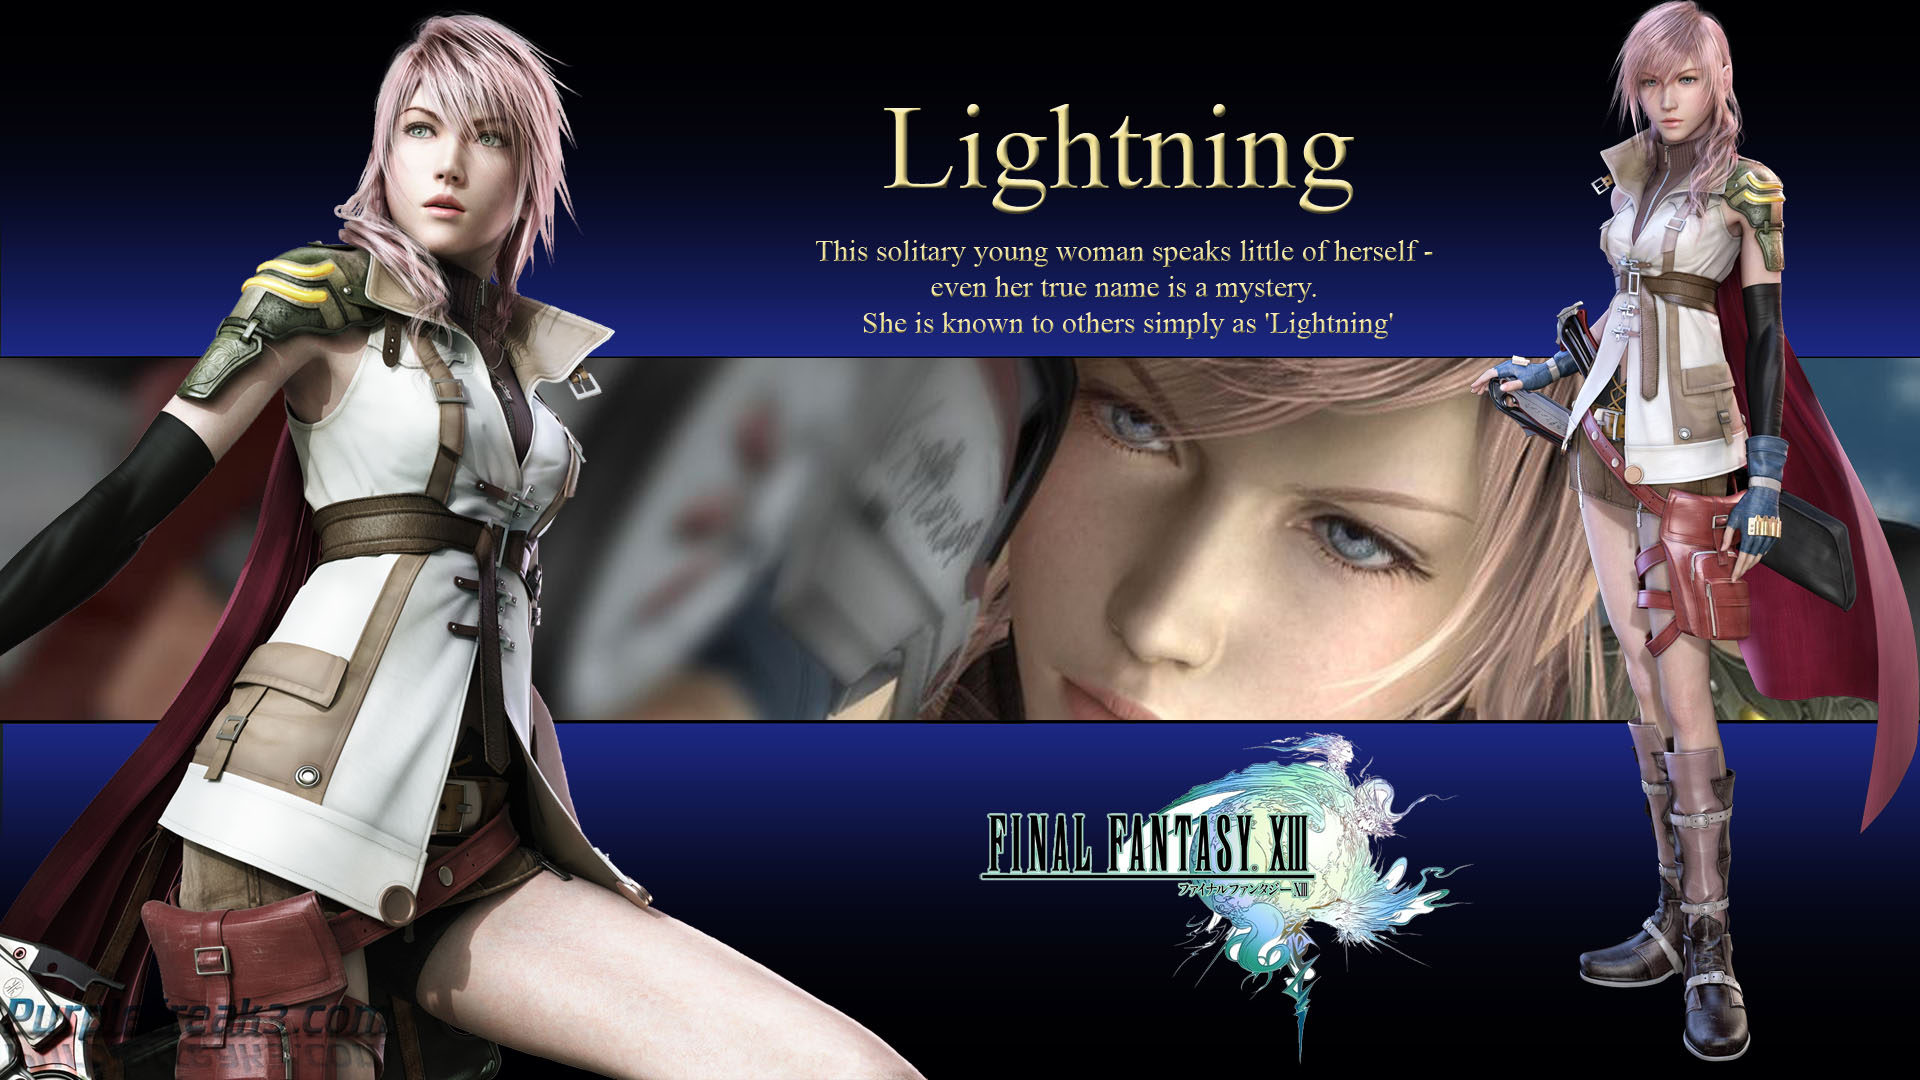 Wallpaper Photos Pictures Pics Images 2013 Lightning Final Fantasy 1920x1080